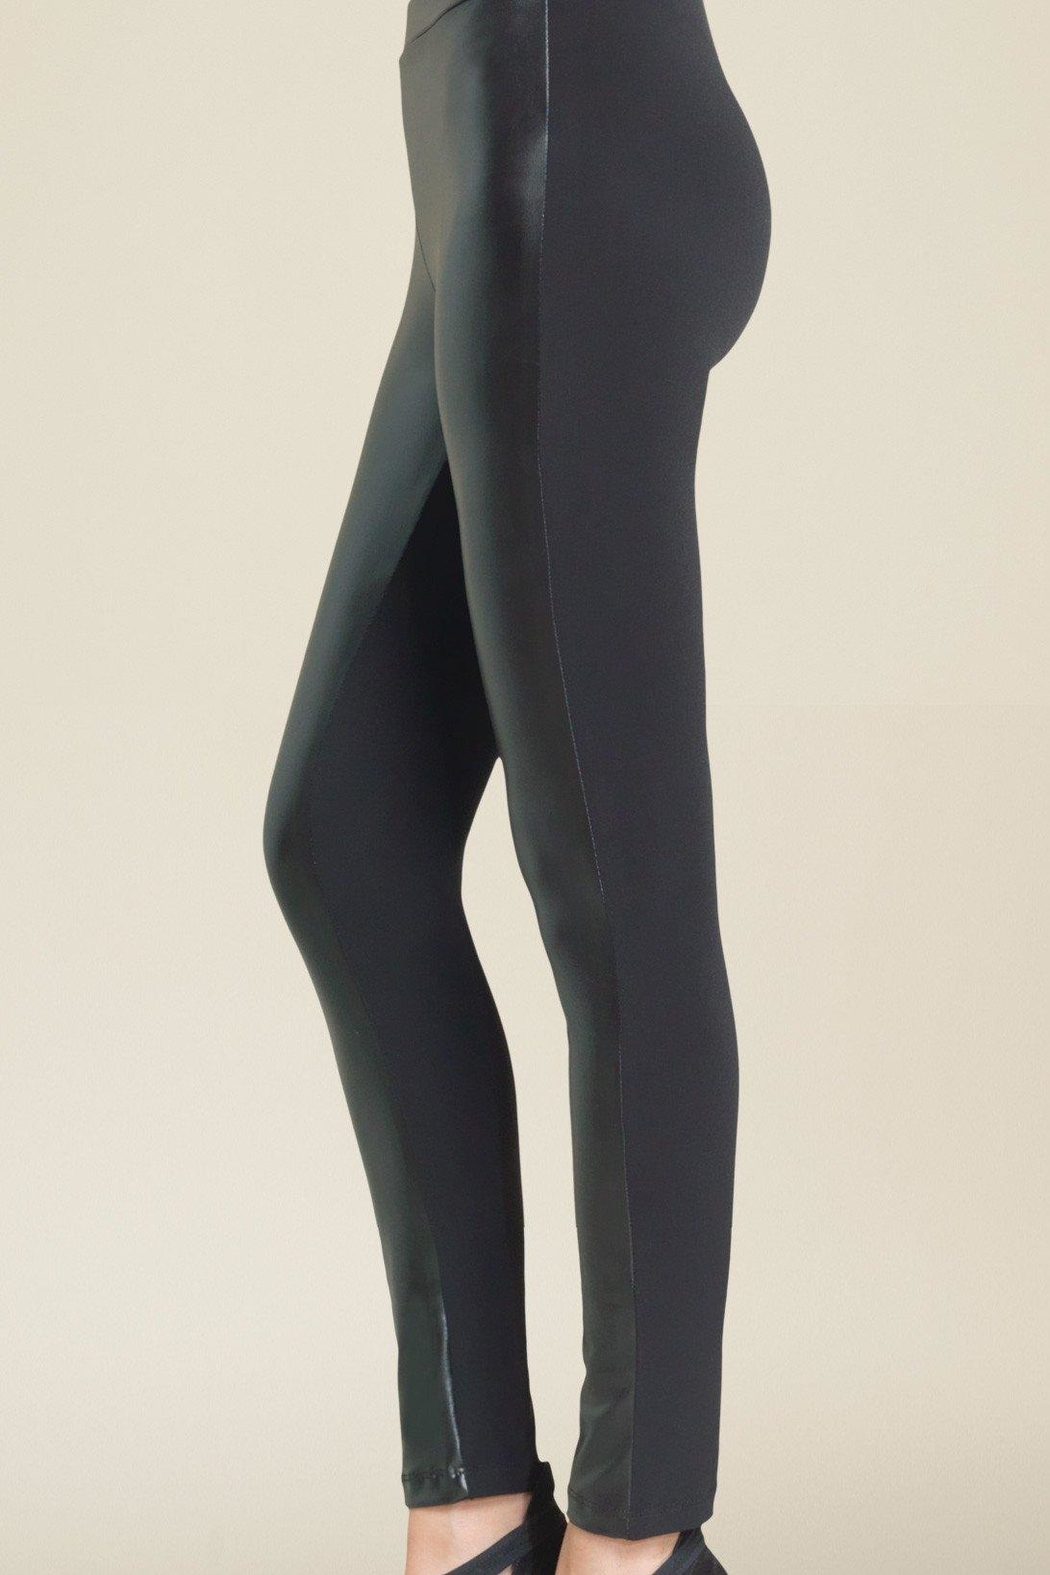 897d4dd800d1fa Clara Sunwoo Leather Front Leggings from Iowa by Elegance Boutique ...